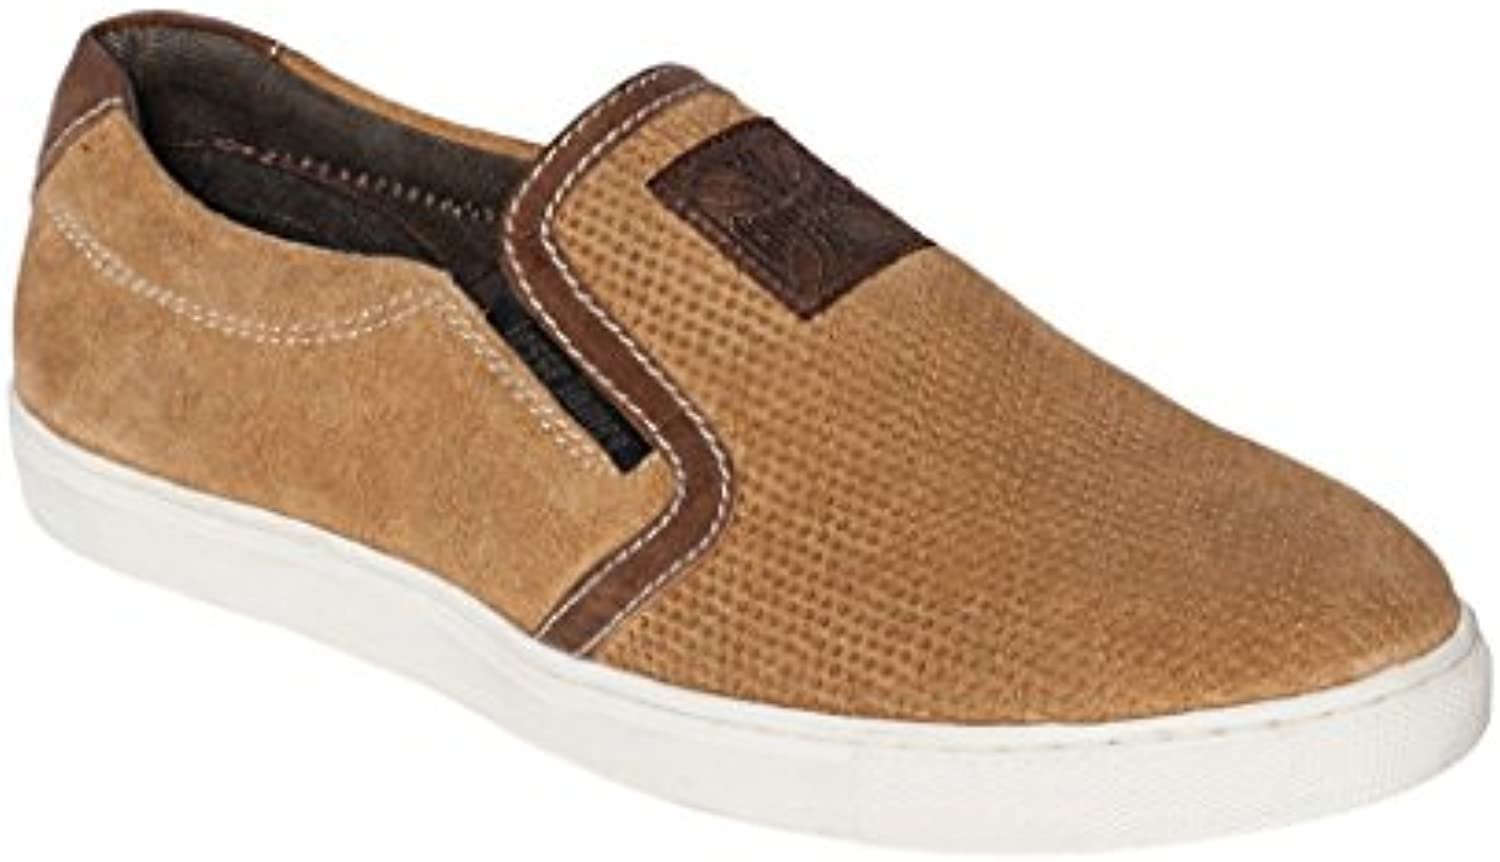 West Coast Choppers Choppers Choppers Shoes Outlaw Suede Slip-Ons Brown f6a268